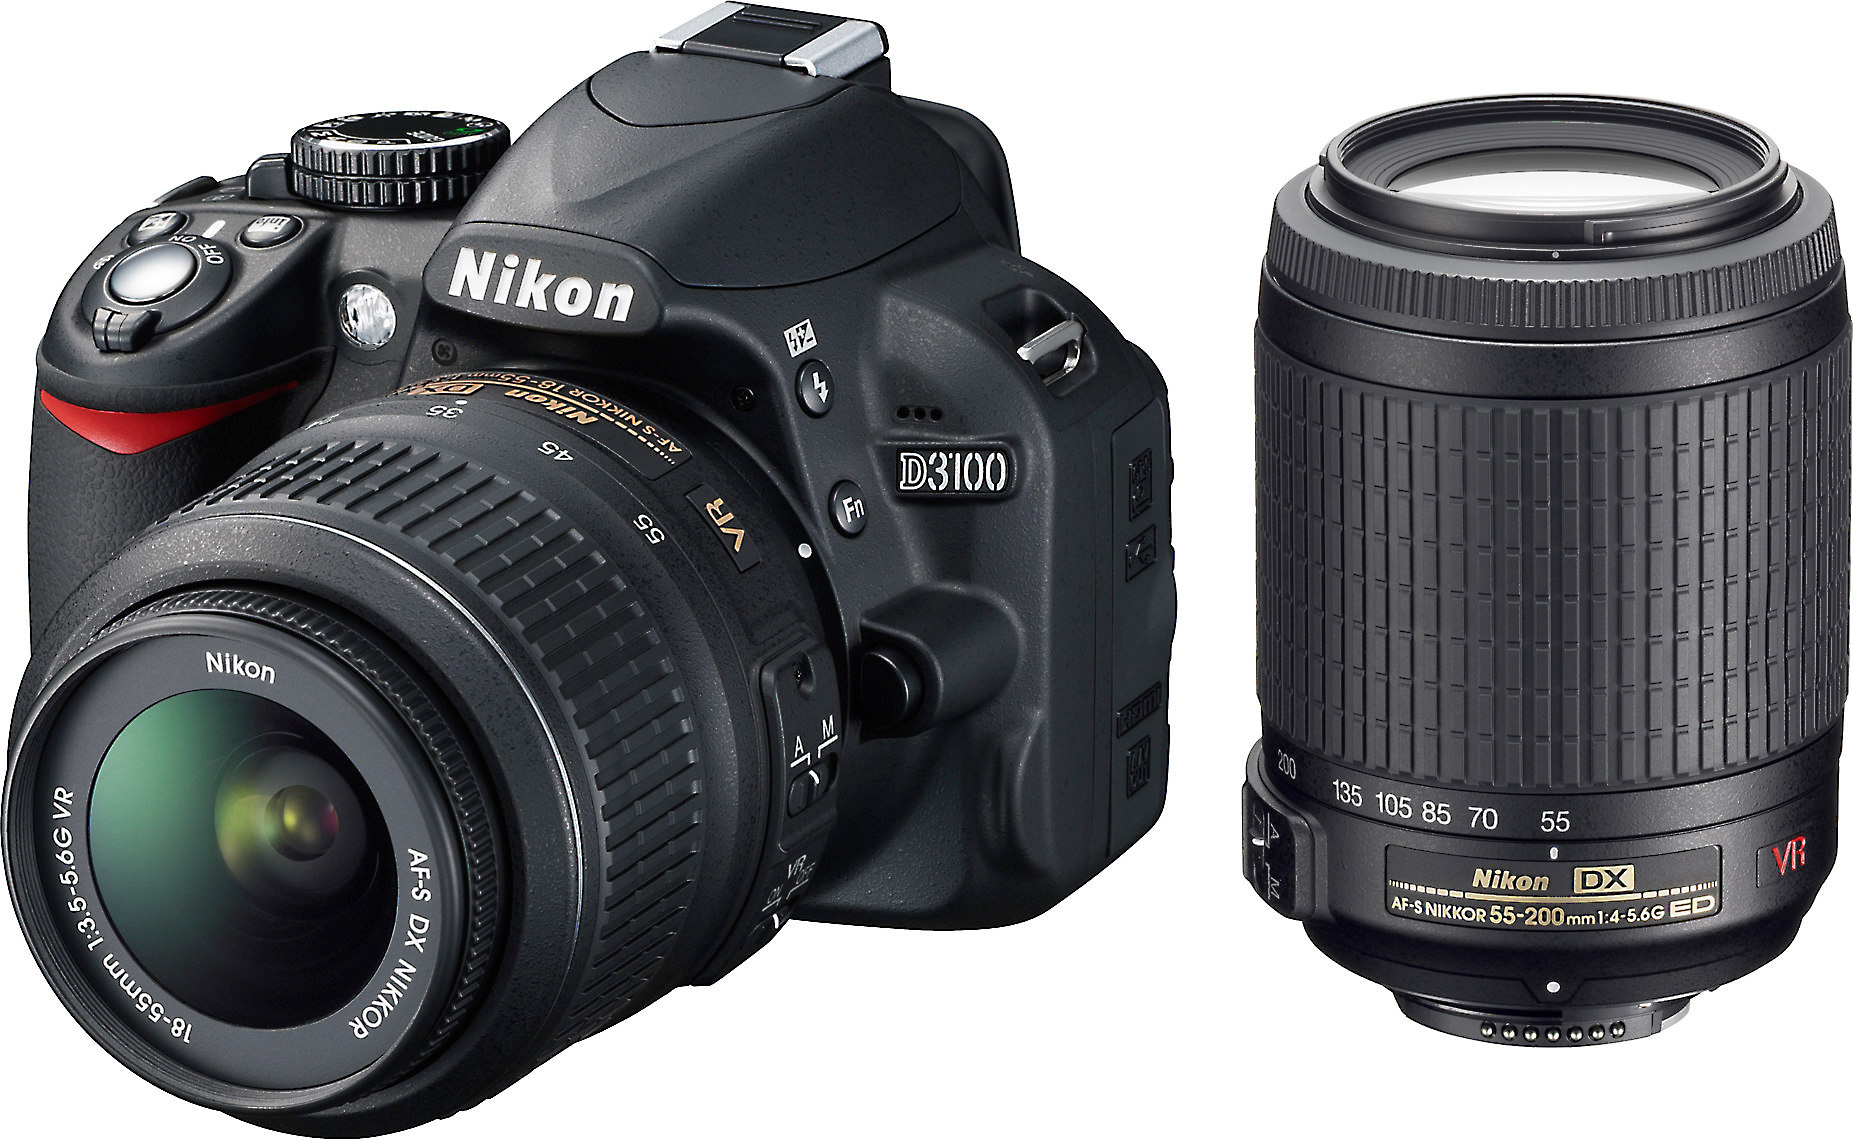 Nikon D3100 Kit with Standard Zoom and Telephoto VR Zoom Lenses